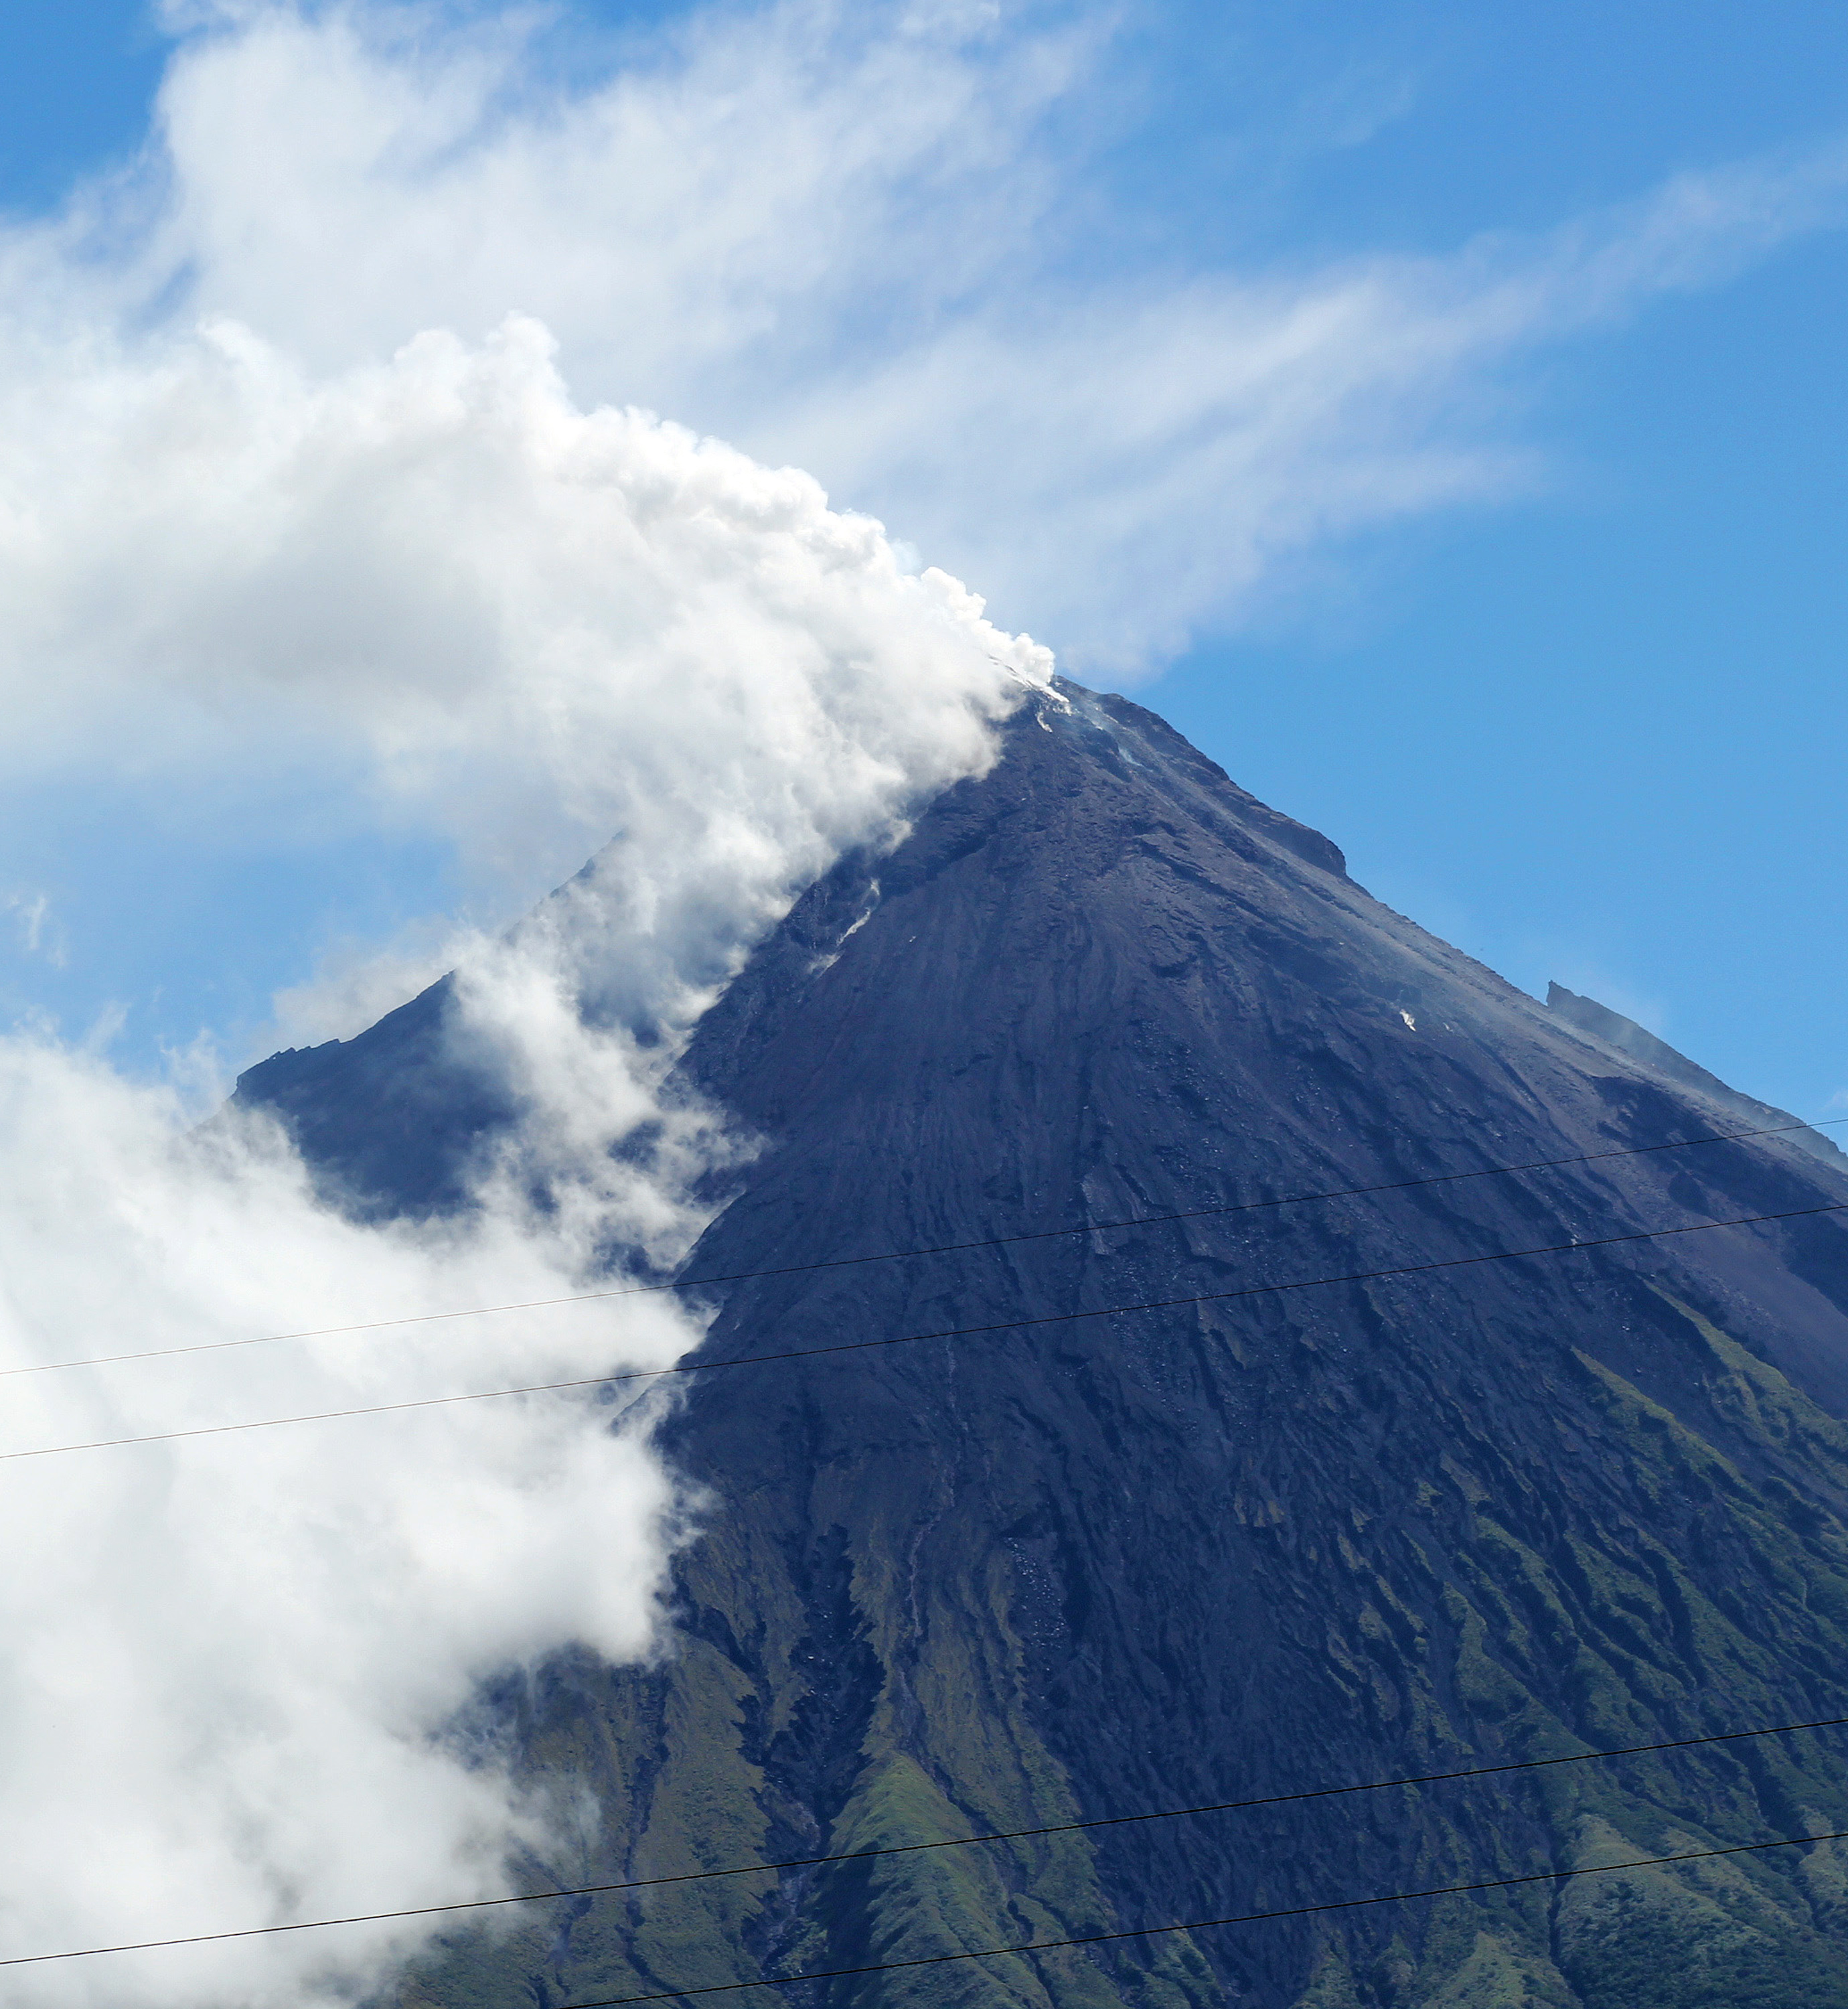 Volcano Mount Mayon spews a thick column of ash 500 metres (1,600 feet) into the air, as seen from the city of Legazpi, albay province, southeast of Manila on May 7, 2013.